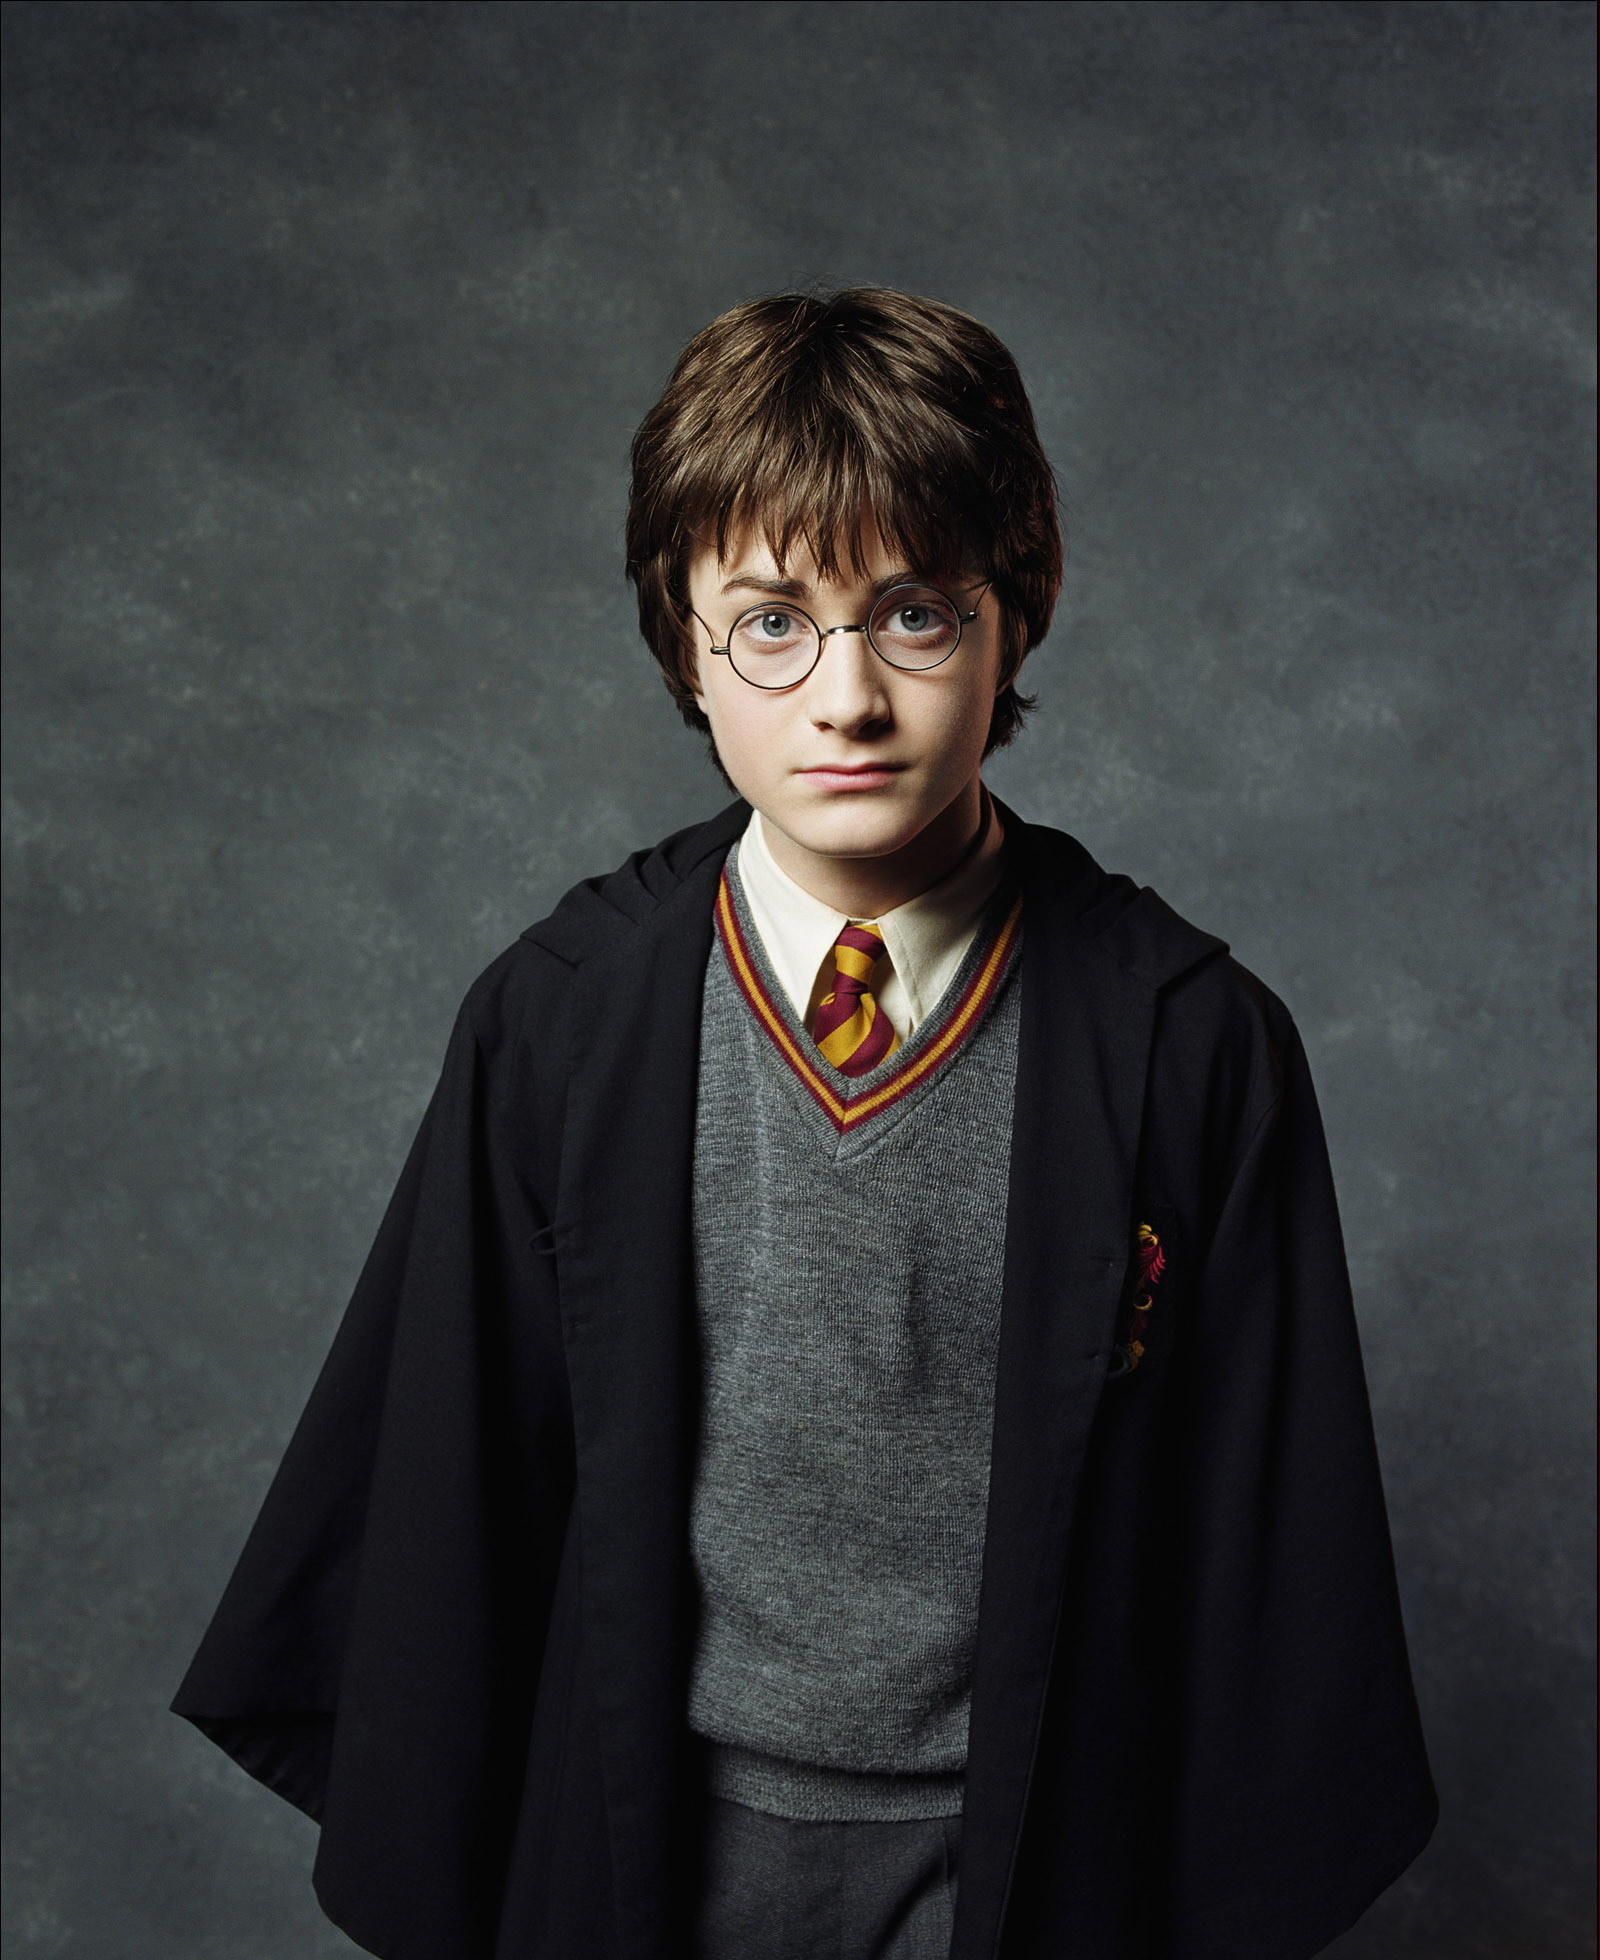 2001-Harry-Potter-and-the-Sorcerer-s-Stone-Promotional-Shoot-HQ-harry-potter-11097228-1600-1960.jpg